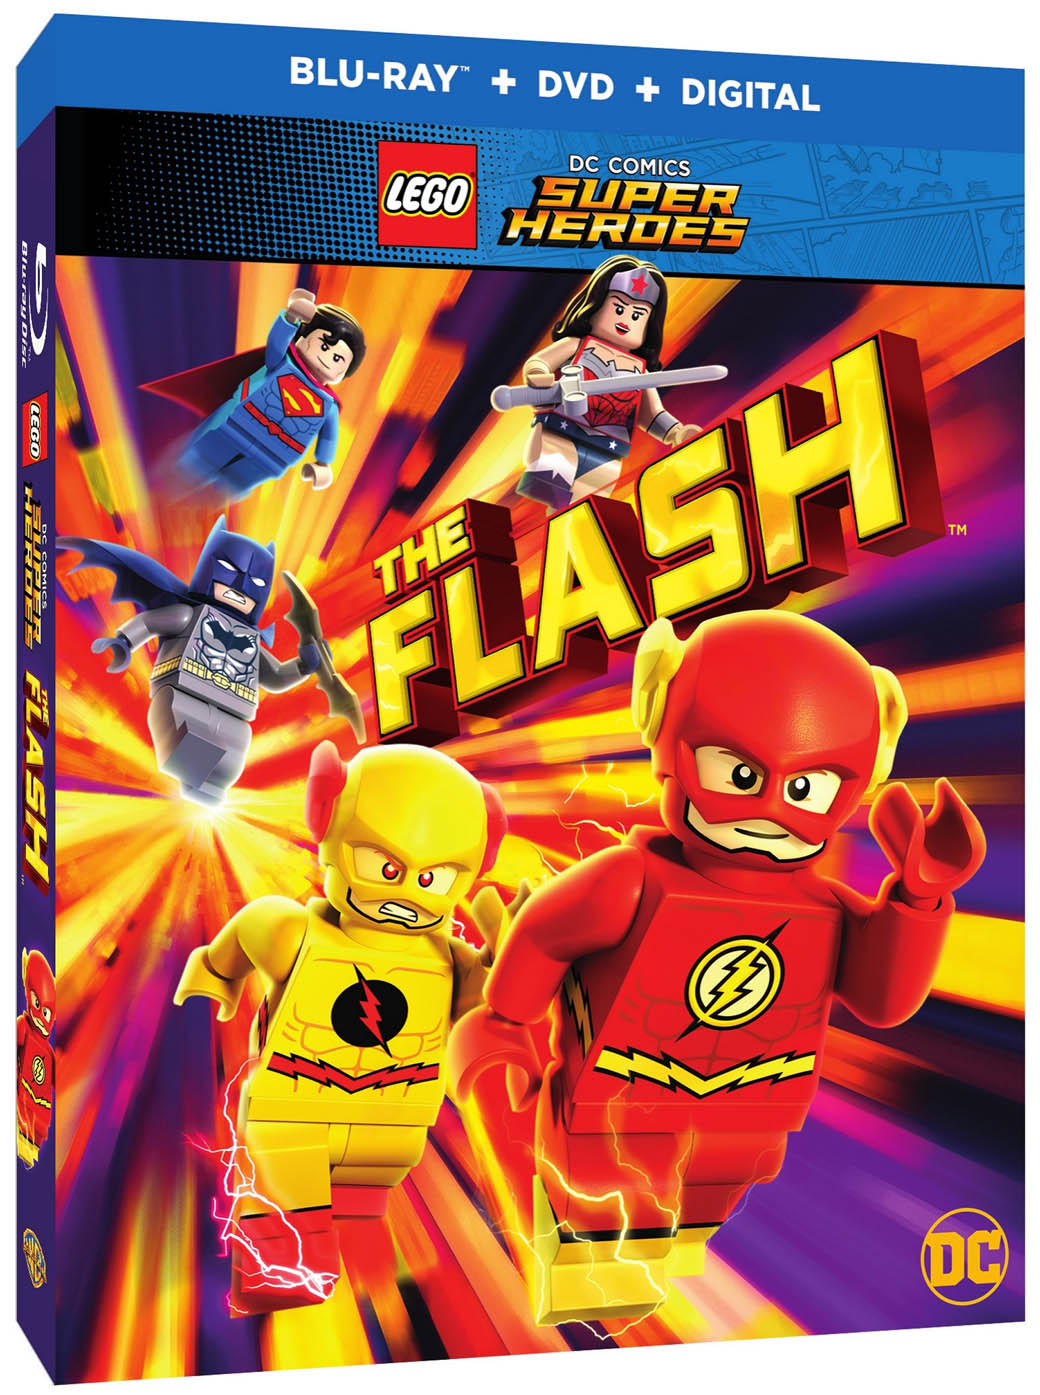 flashbluray.jpg